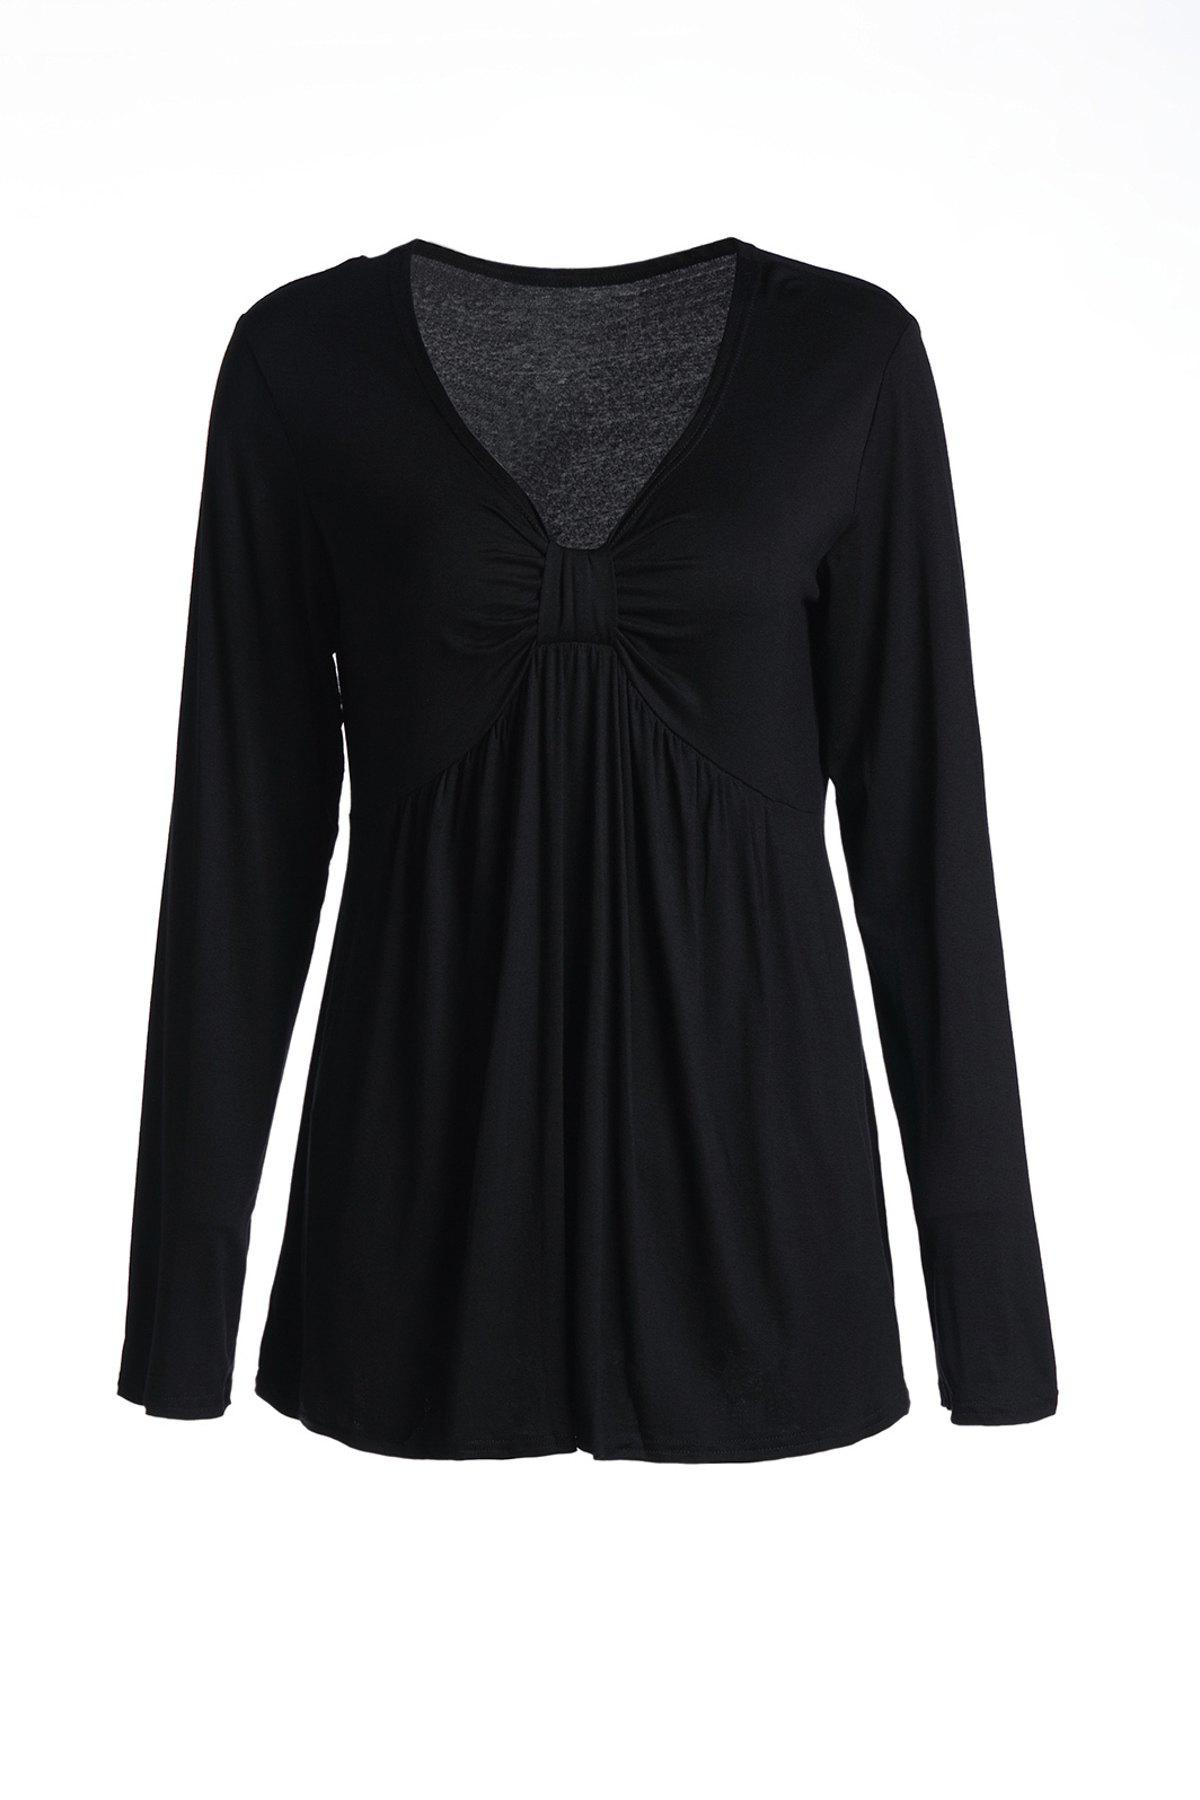 Slimming Shirts For Women